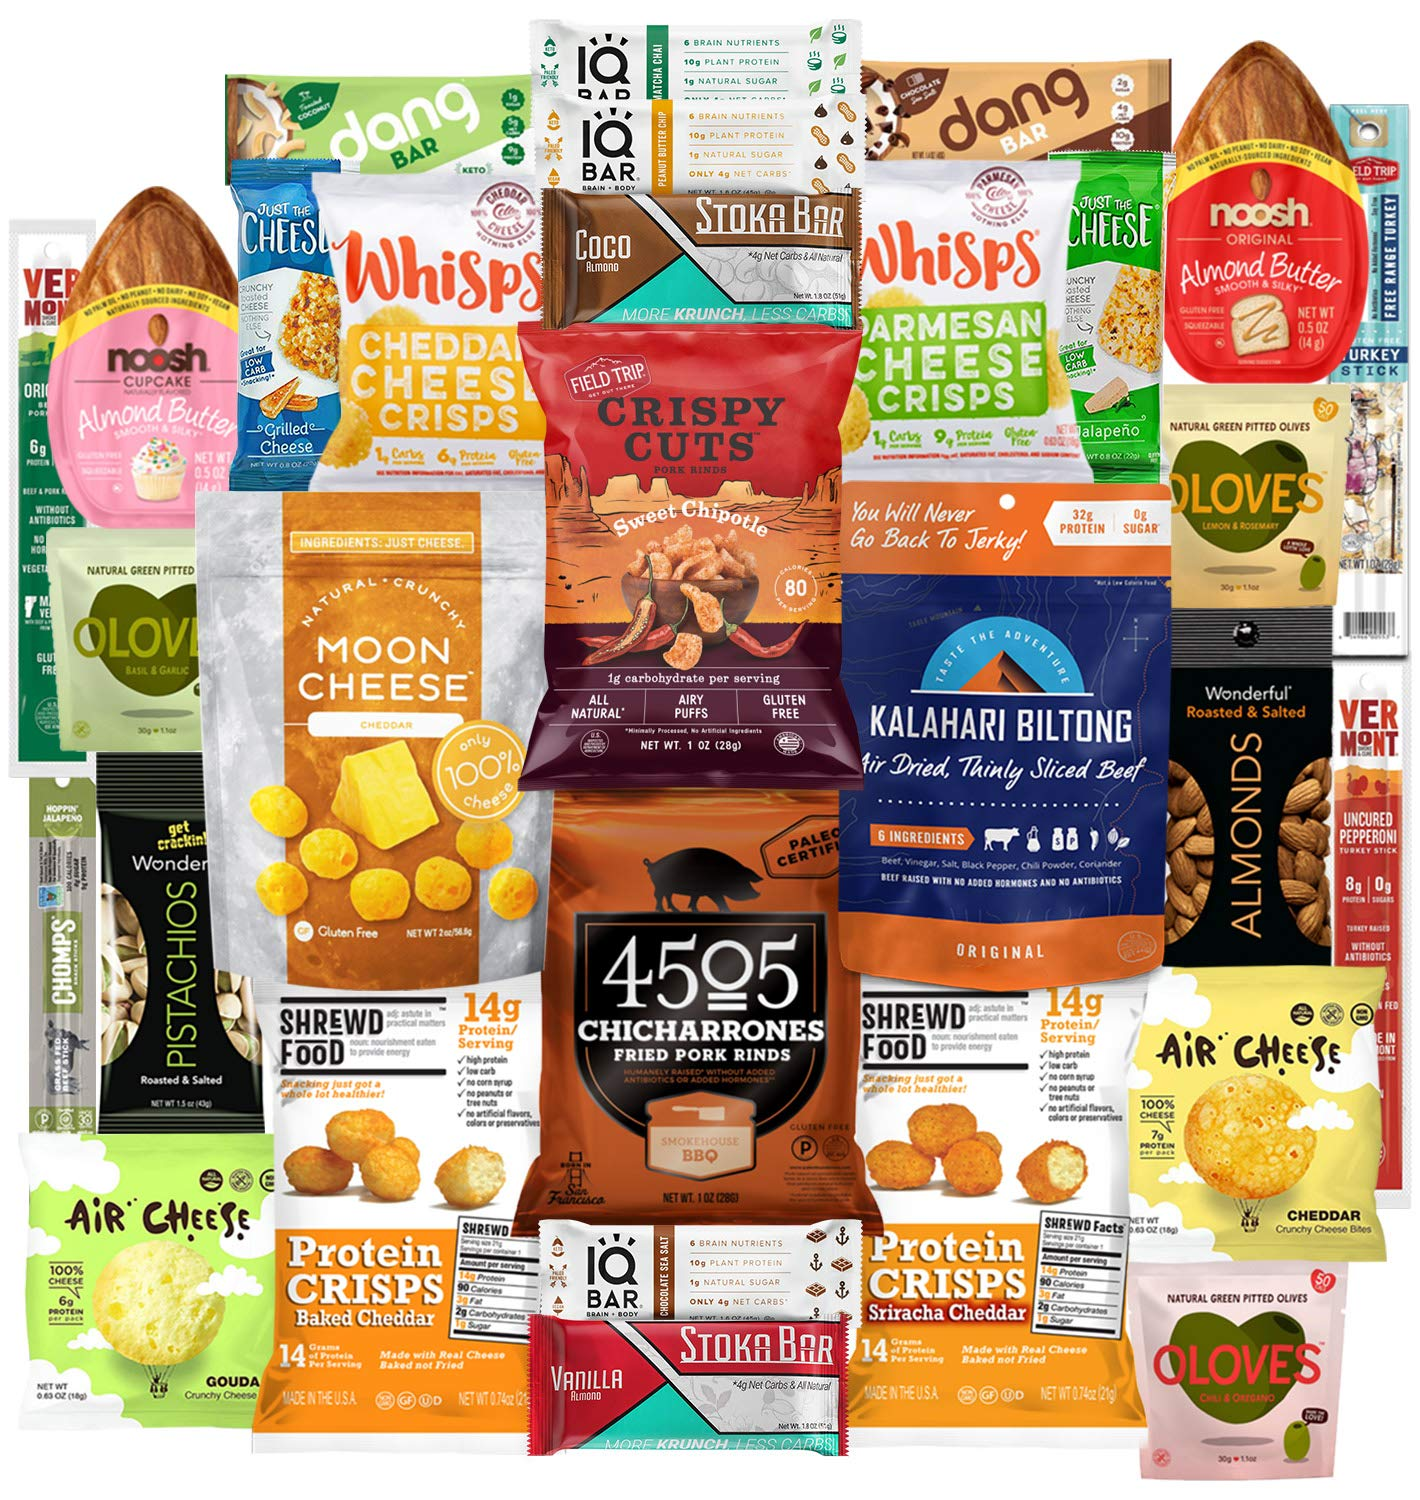 Keto Snacks Care Package (30 Count) : Variety of Ketogenic Friendly & Low Carb - Protein Bars, Cheese Crisps, Grass Fed Meat Sticks Bars, Pork Rinds, Biltong, Nuts, Candy In Healthy Snack Gift Box by Ketone Box (Image #1)